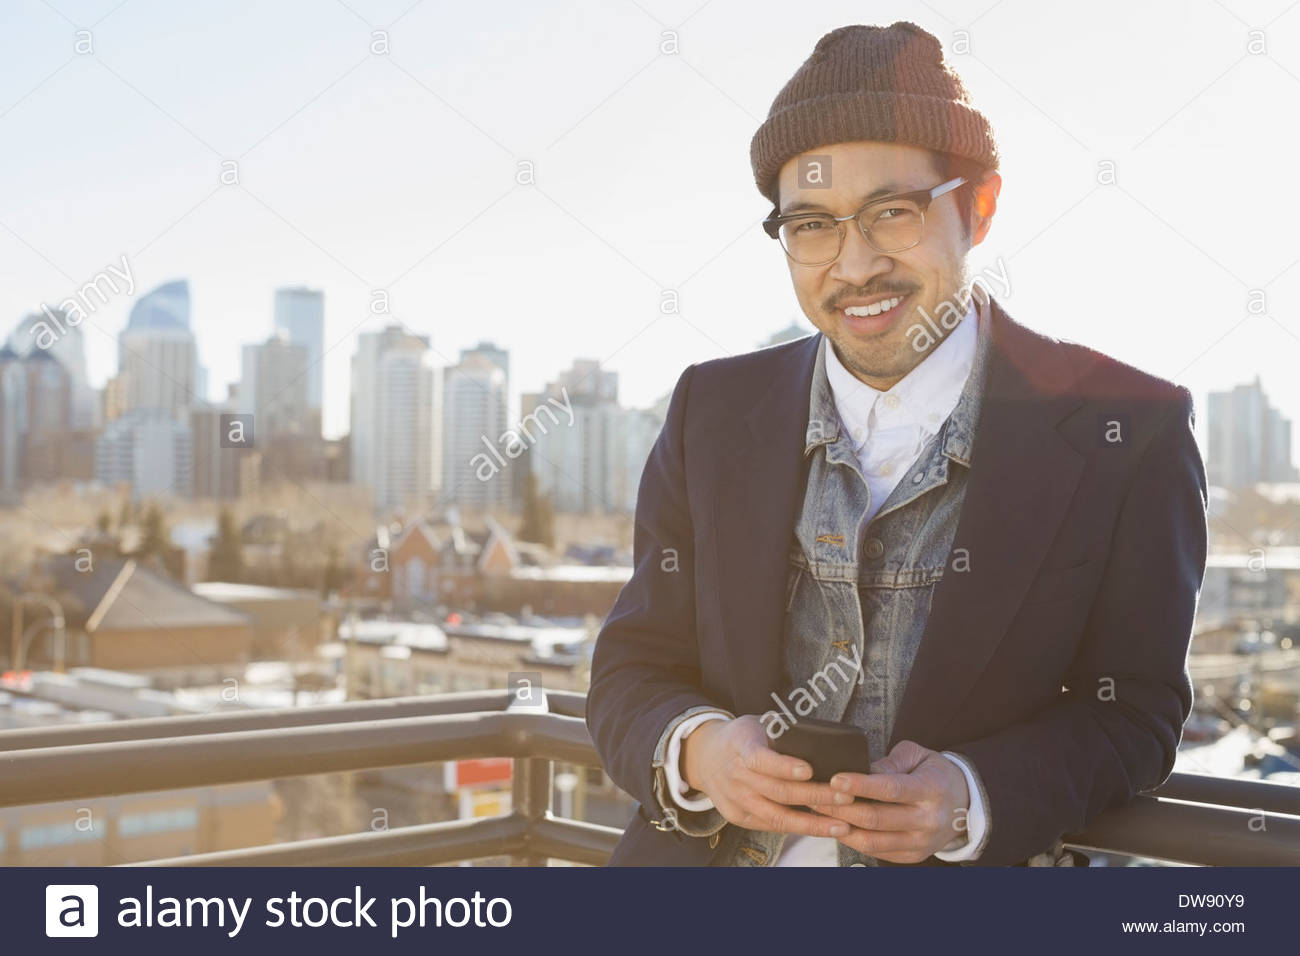 Portrait of man holding smart phone outdoors against cityscape - Stock Image